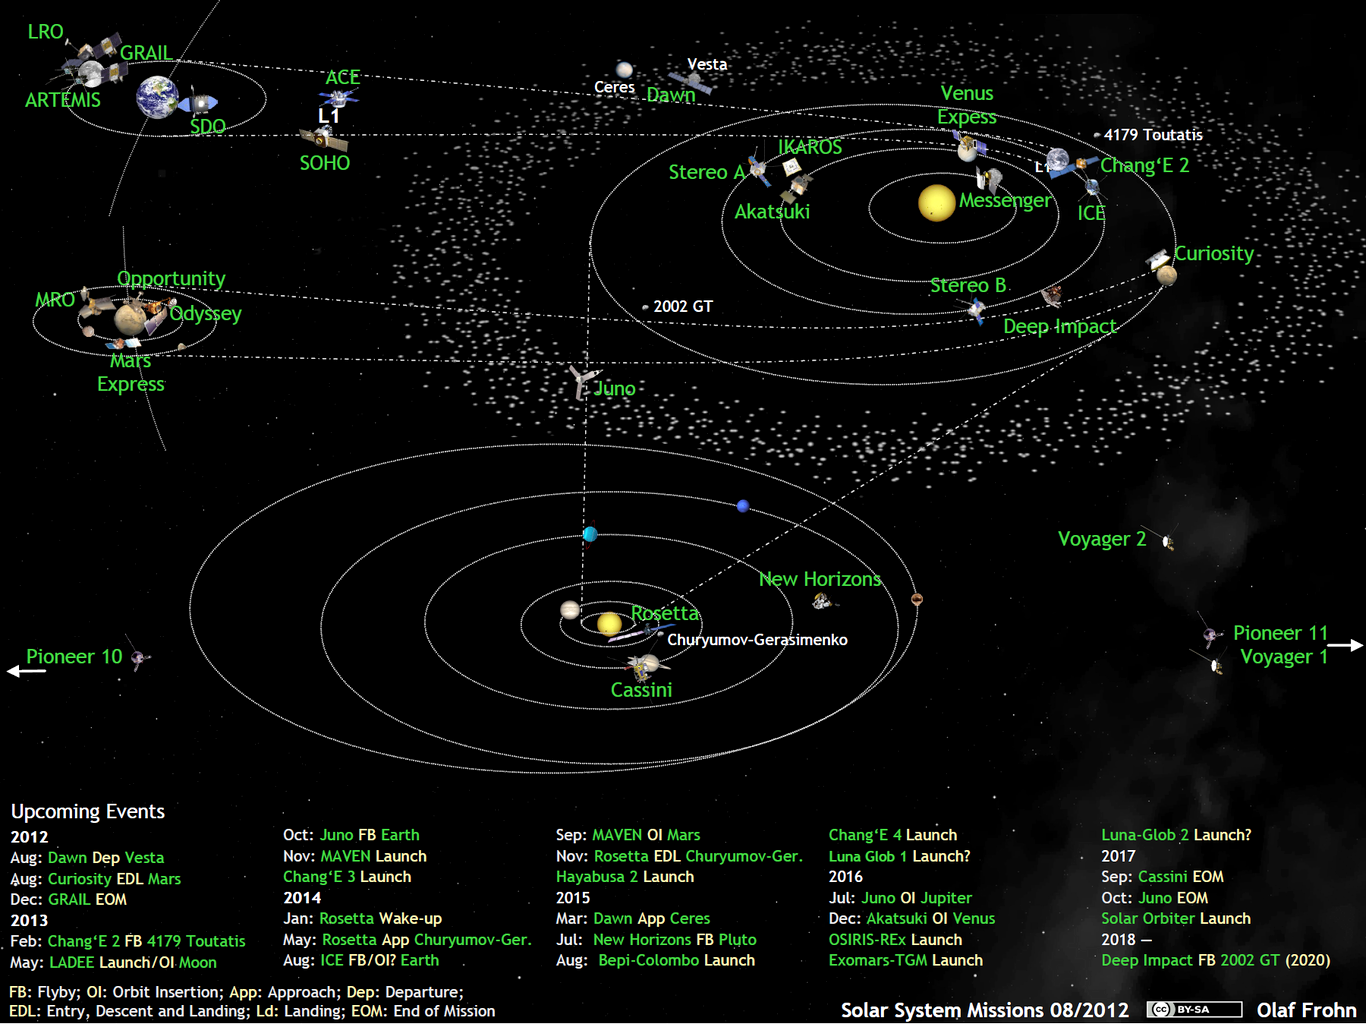 Whats Up In The Solar System Diagram By Olaf Frohn Updated For Wind Widows To Universe Image Sun Images December 2018